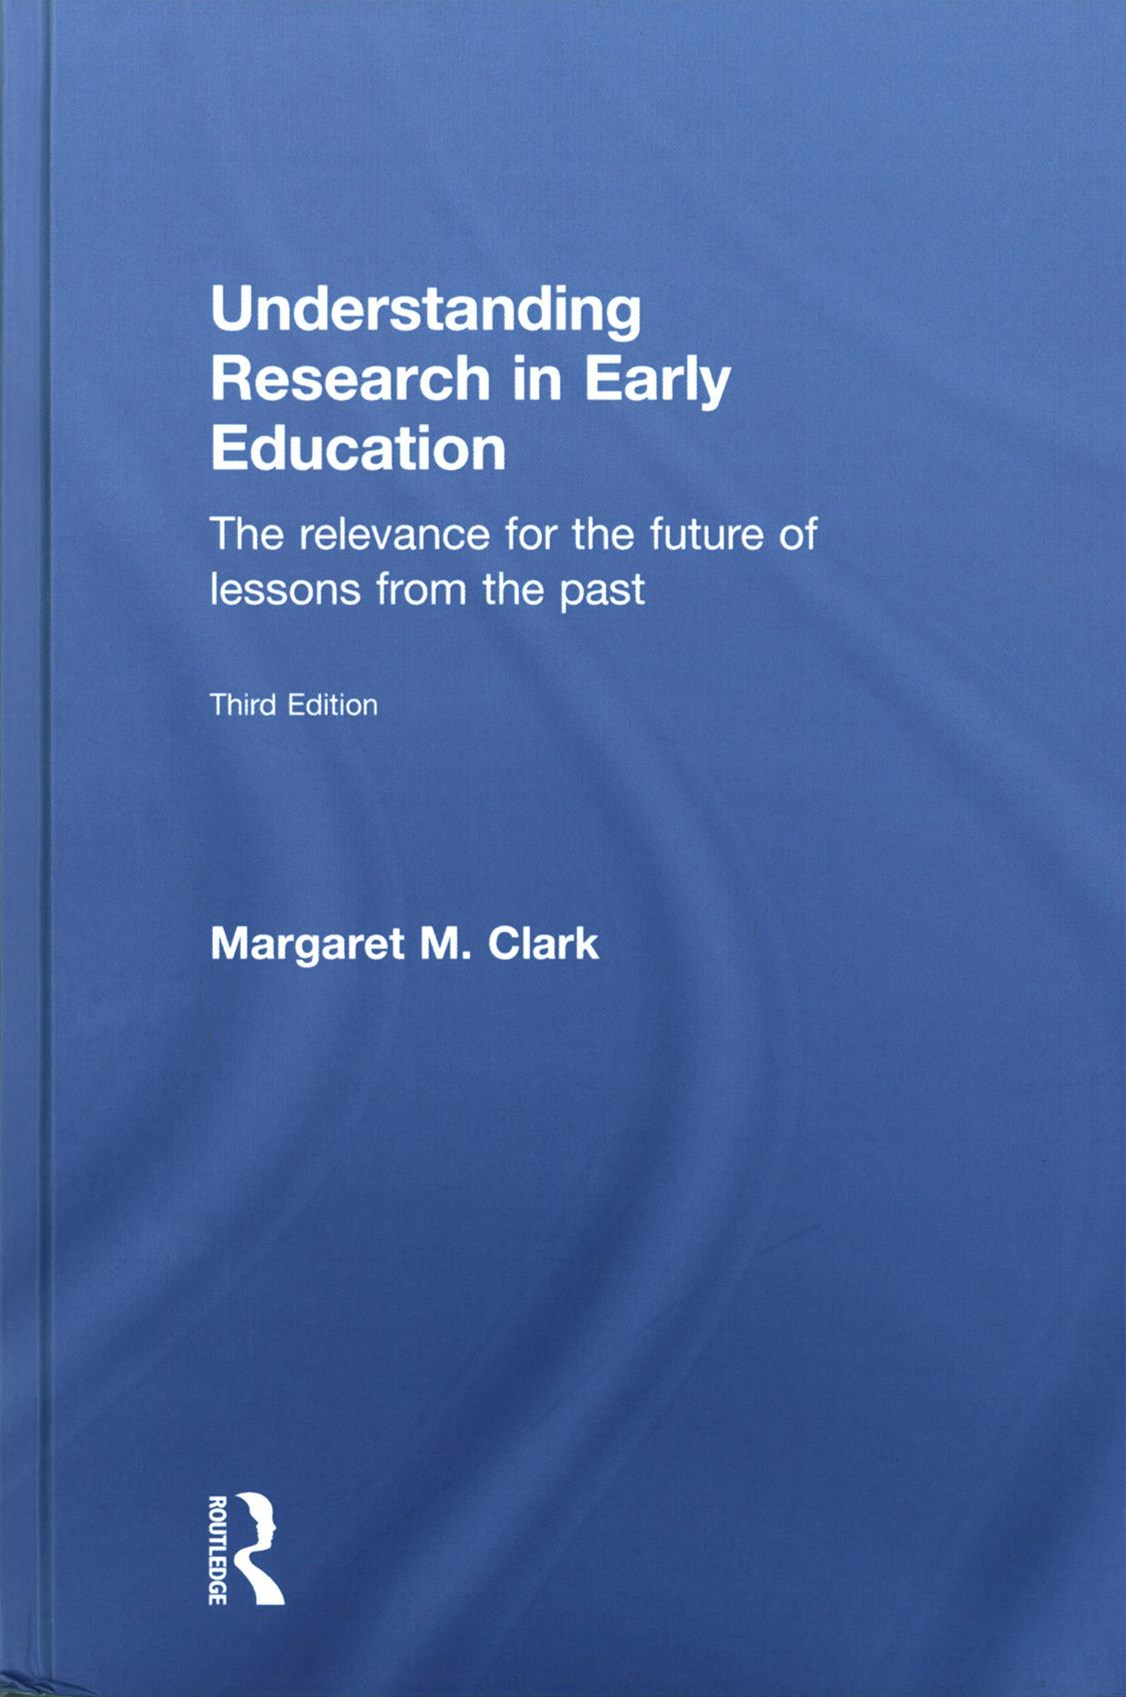 Understanding Research in Early Education